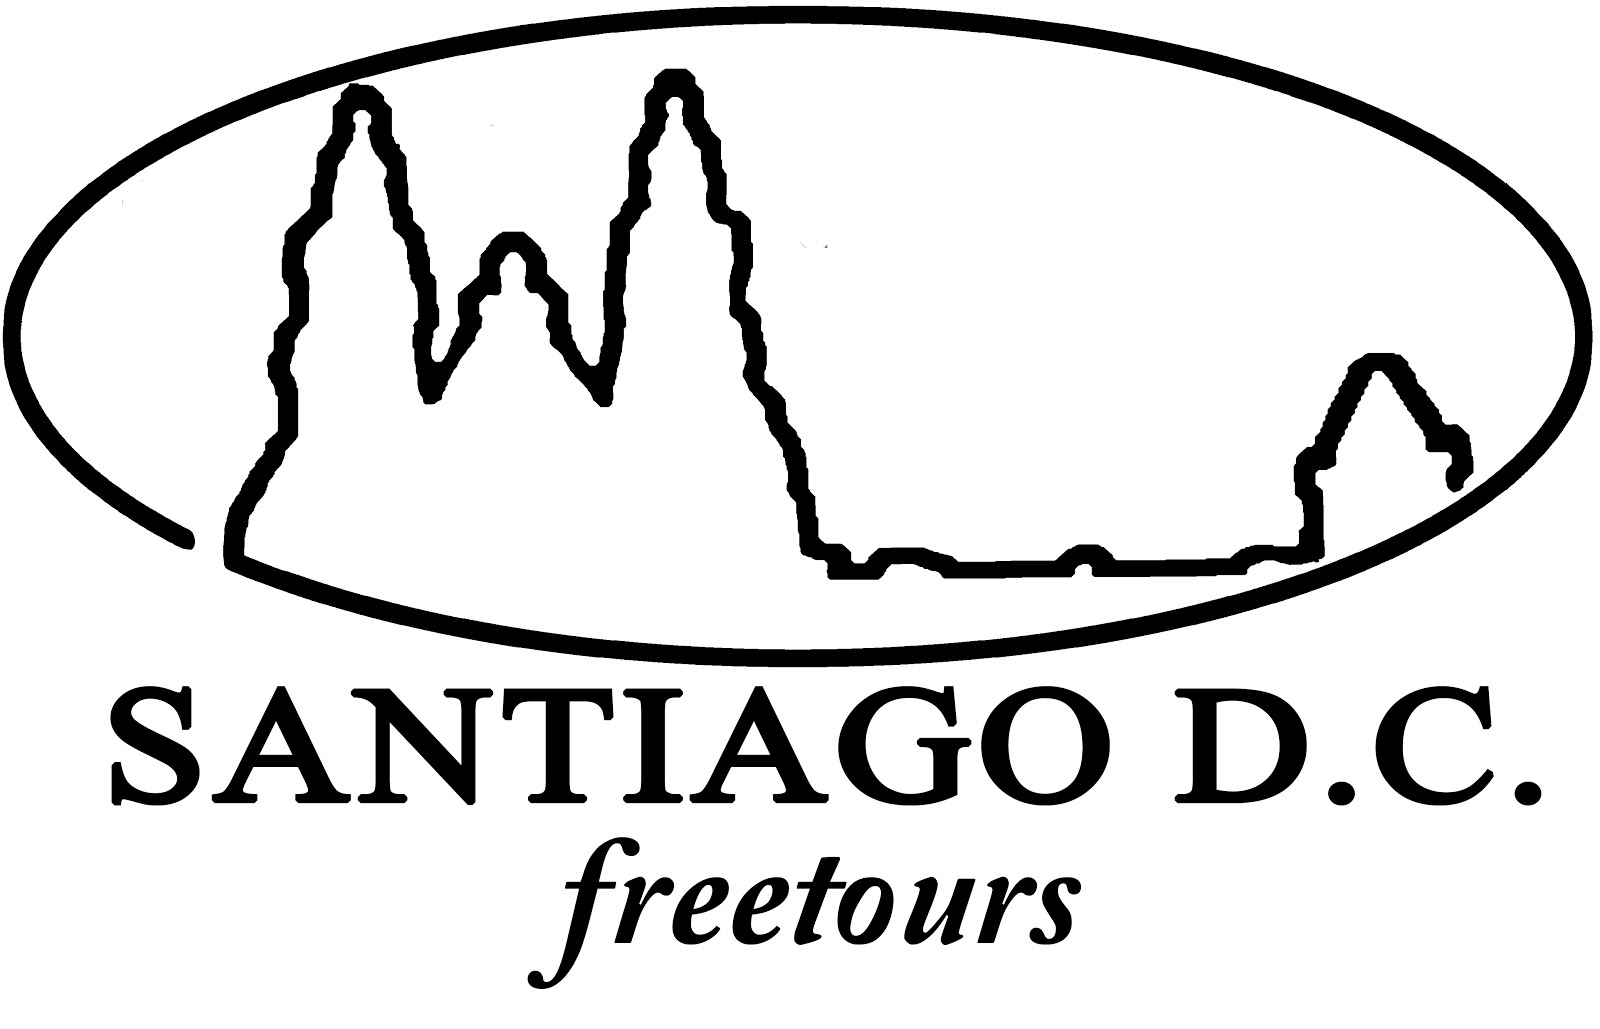 Join Santiago Free tours and Discover the more known and the hidden Old Town of Santiado de Compost